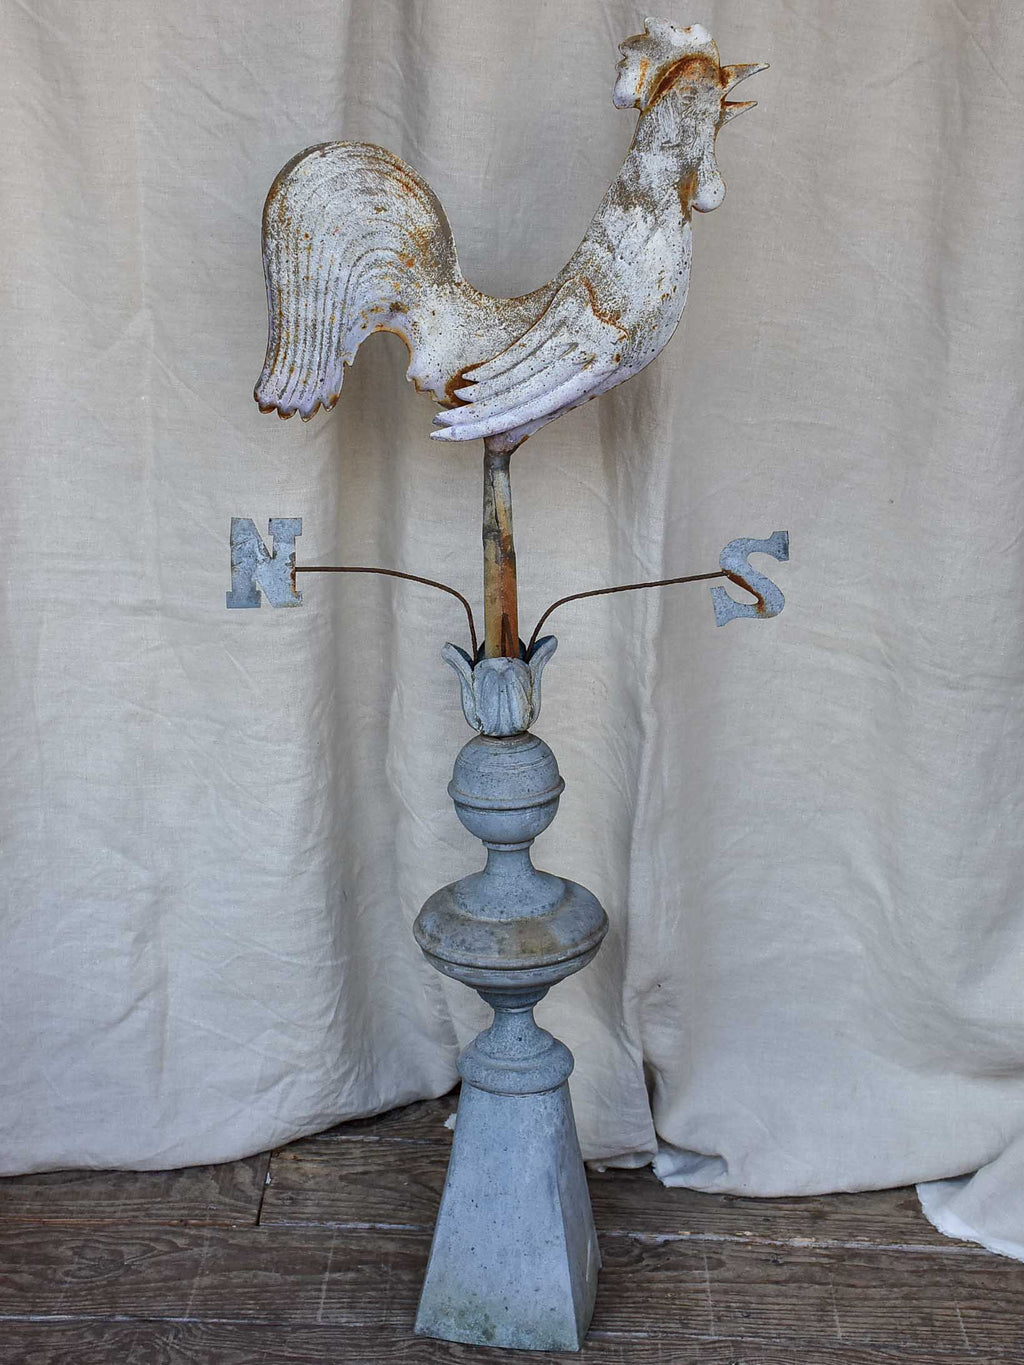 Late 19th Century French weather vane with rooster